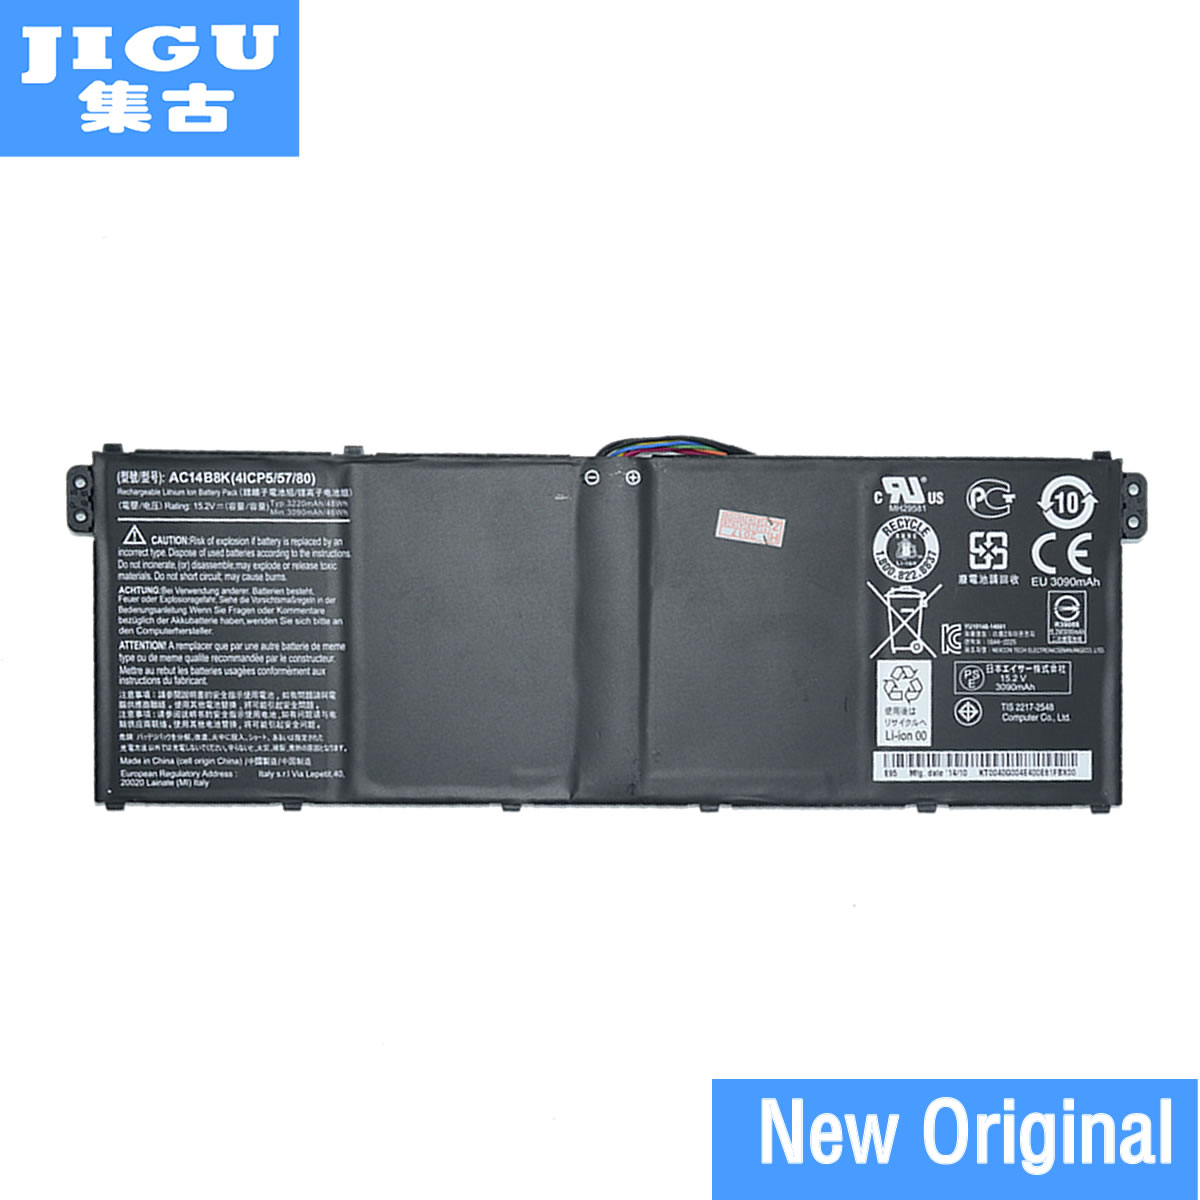 JIGU New Original 15.2V 48Wh Laptop Battery For Acer For Aspire V3 V3-371 V3-371-30FA AC14B8KJIGU New Original 15.2V 48Wh Laptop Battery For Acer For Aspire V3 V3-371 V3-371-30FA AC14B8K